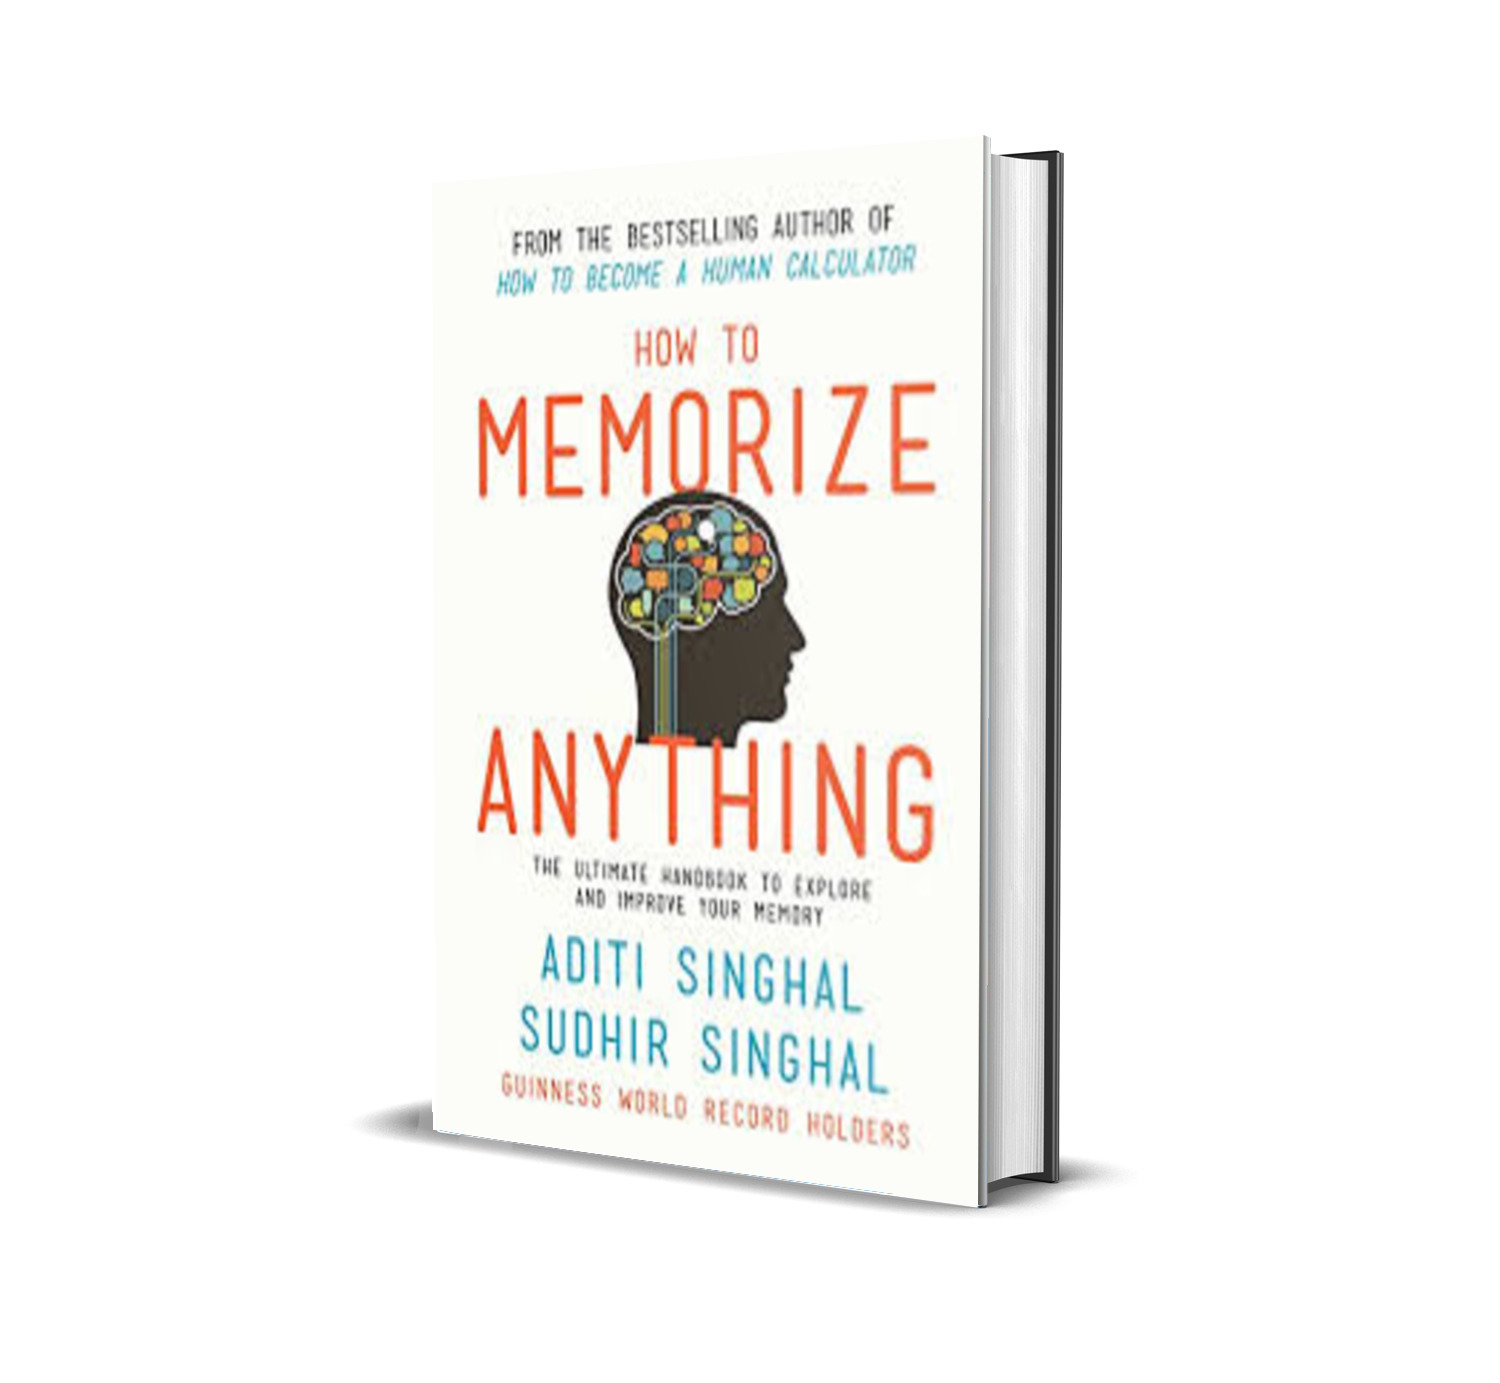 How To Memorize Anything - Aditi Singhal